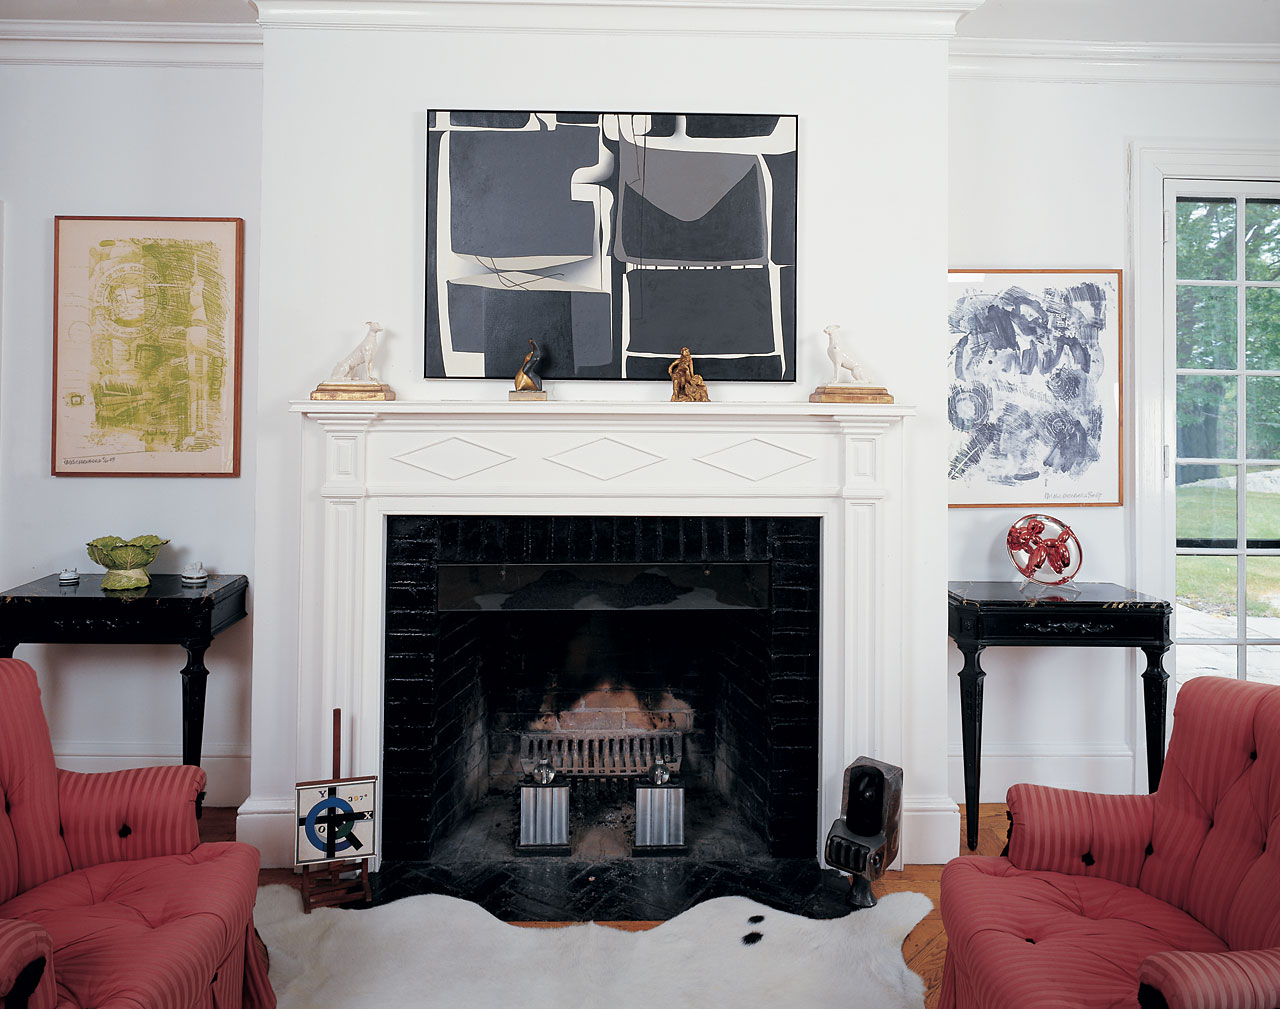 Left and loop right above the mantel hangs a painting by abstract